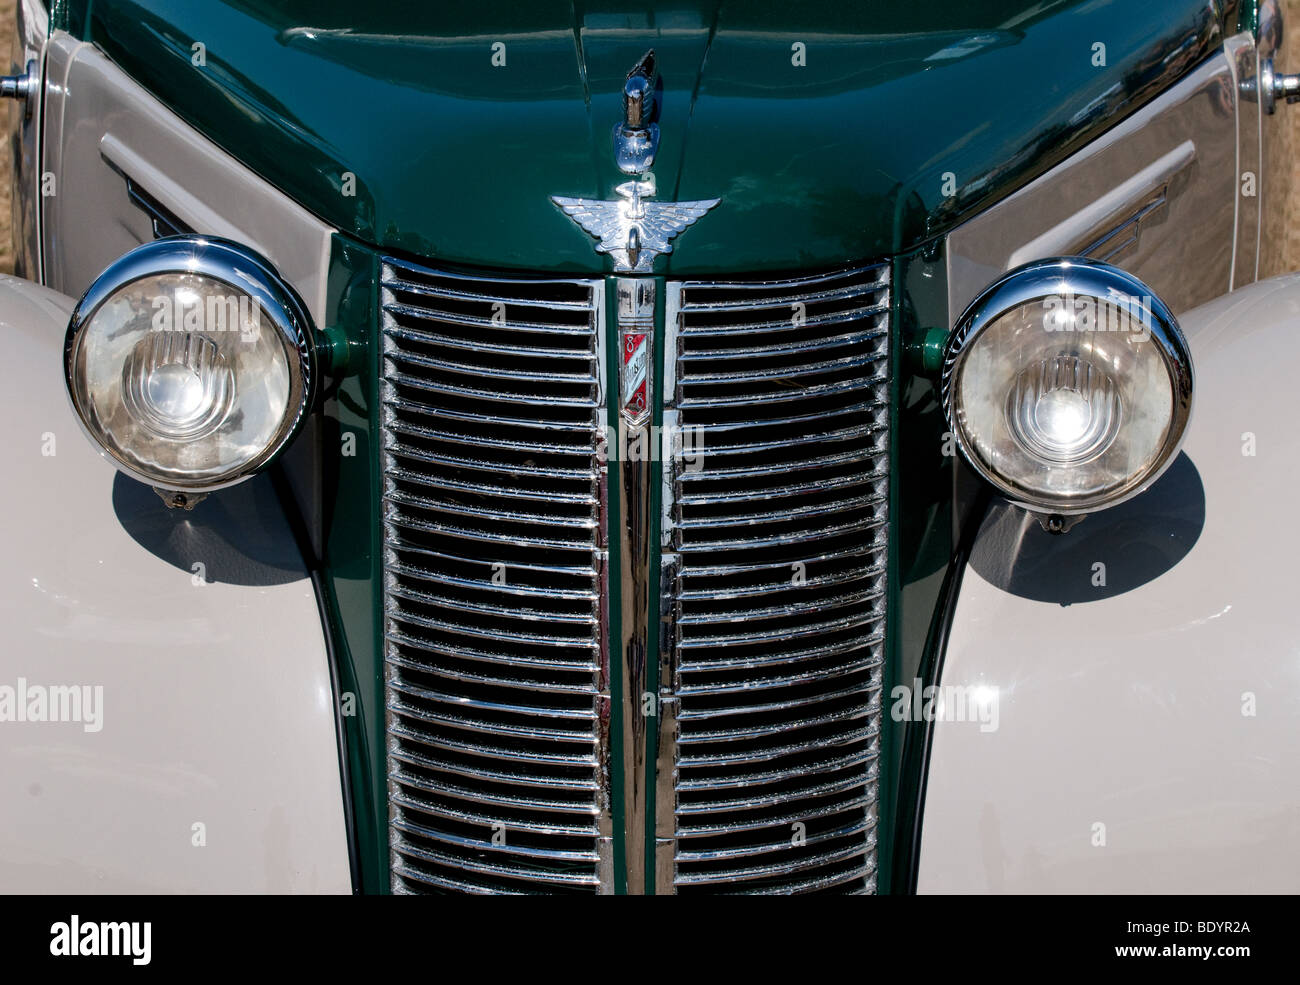 Design of a car radiator - Headlights And Radiator Grill Of A Classic Car On Display At A Country Show In Essex